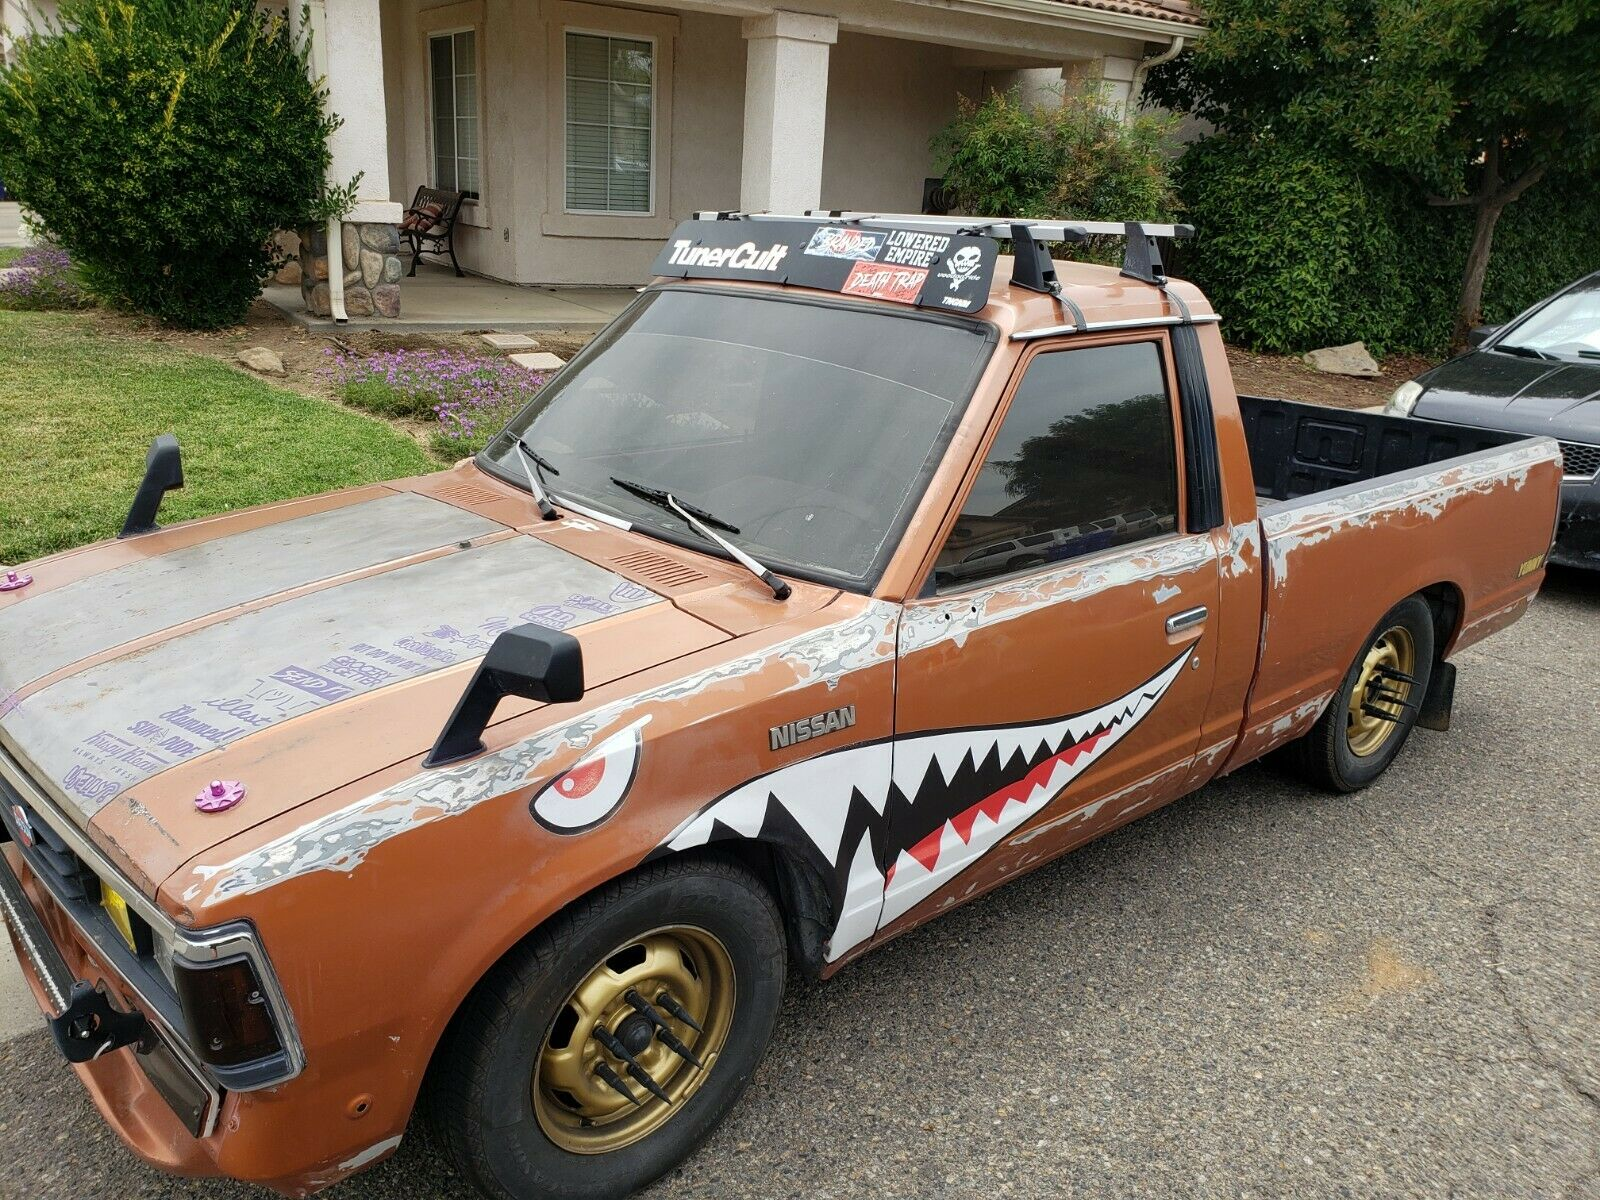 At Least It's Cheap: This 1985 Nissan Truck Is One Of eBay's More Odd Items For Sale At The Moment